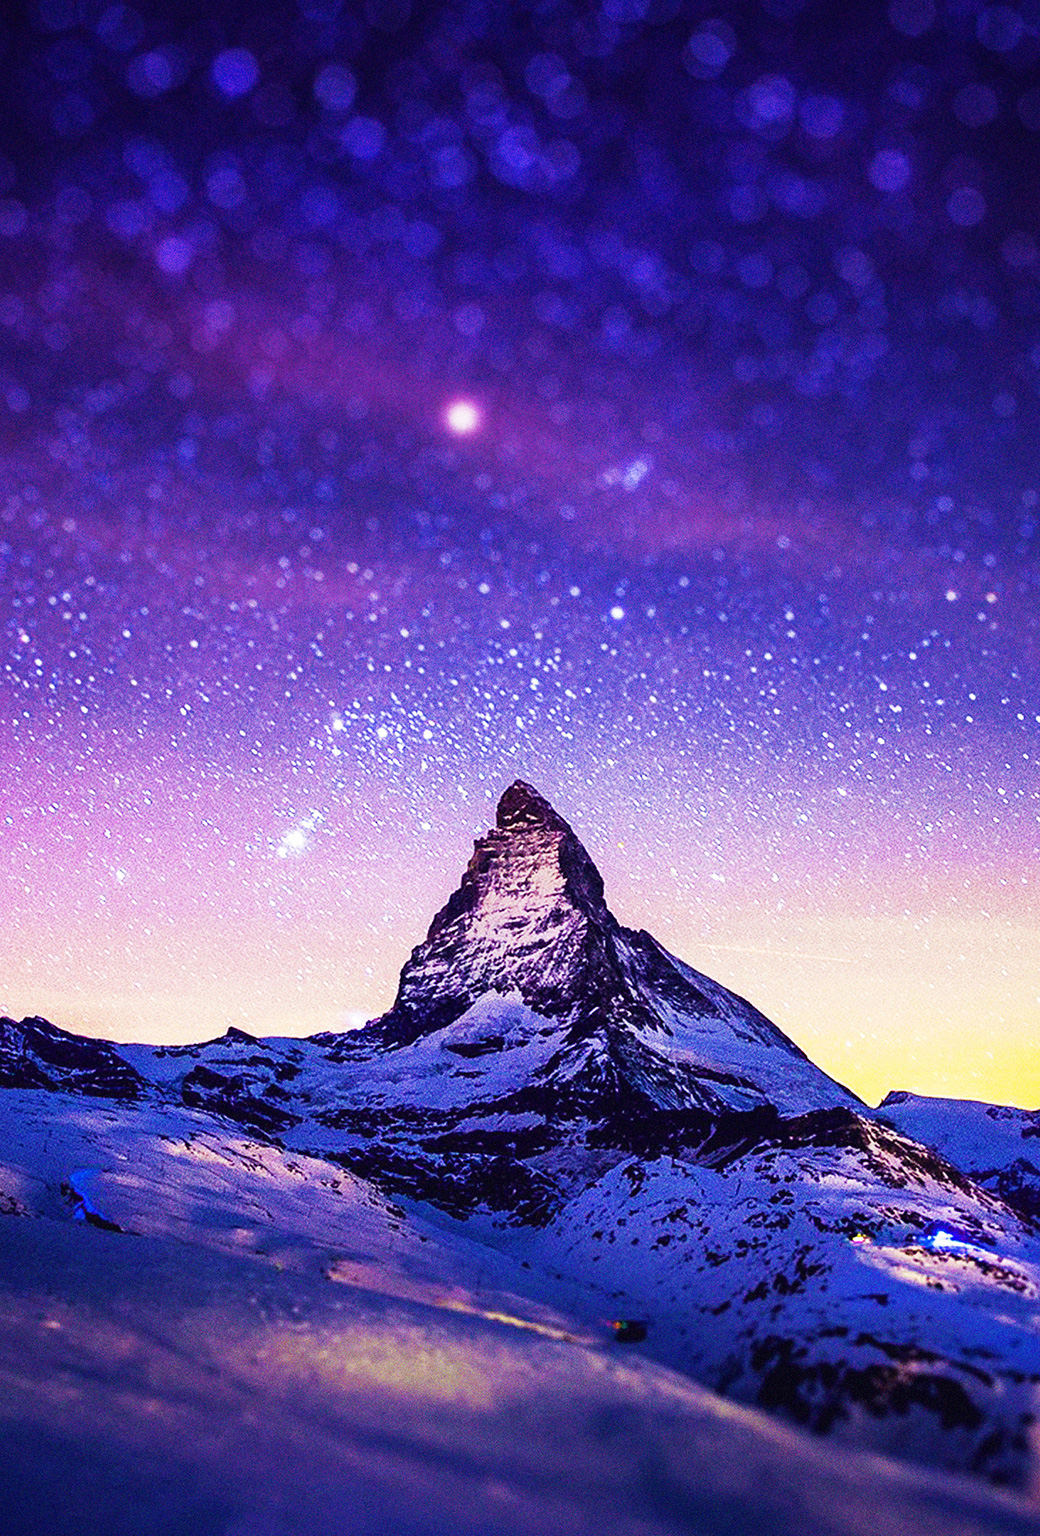 Snow Mountain Wallpaper For Iphone 11 Pro Max X 8 7 6 Free